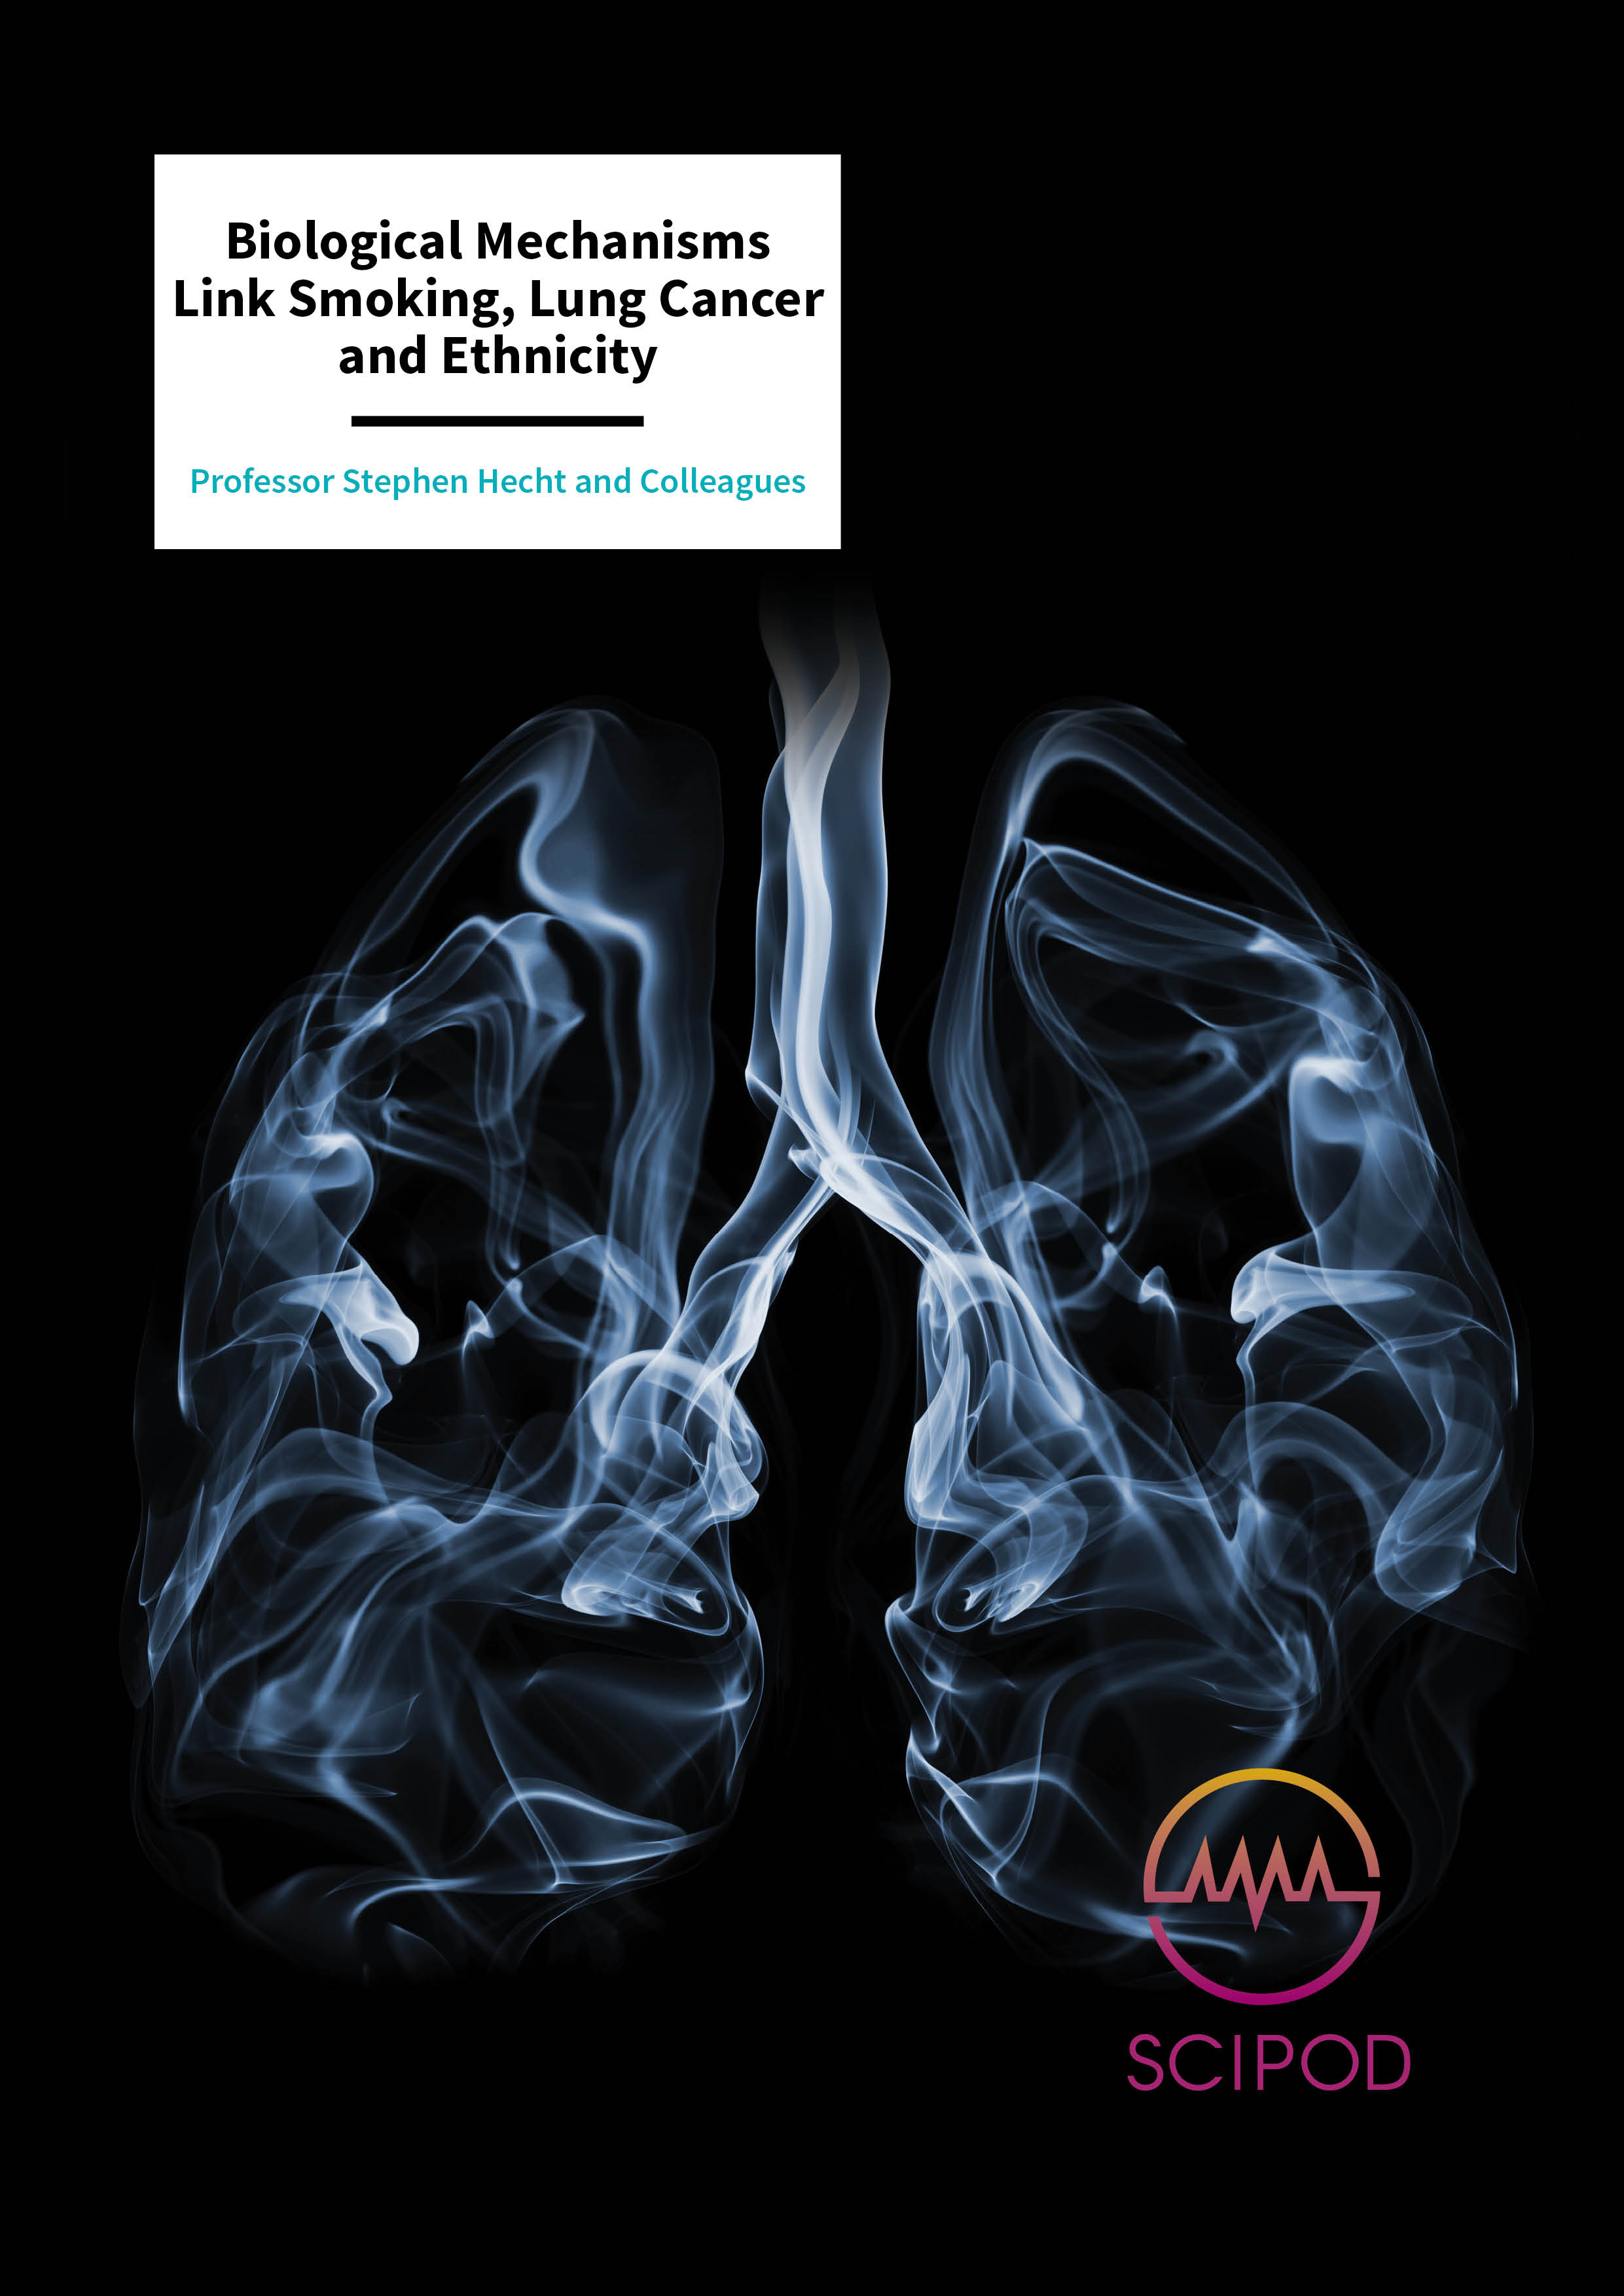 Biological Mechanisms Link Smoking, Lung Cancer and Ethnicity – Professor Stephen Hecht and Colleagues